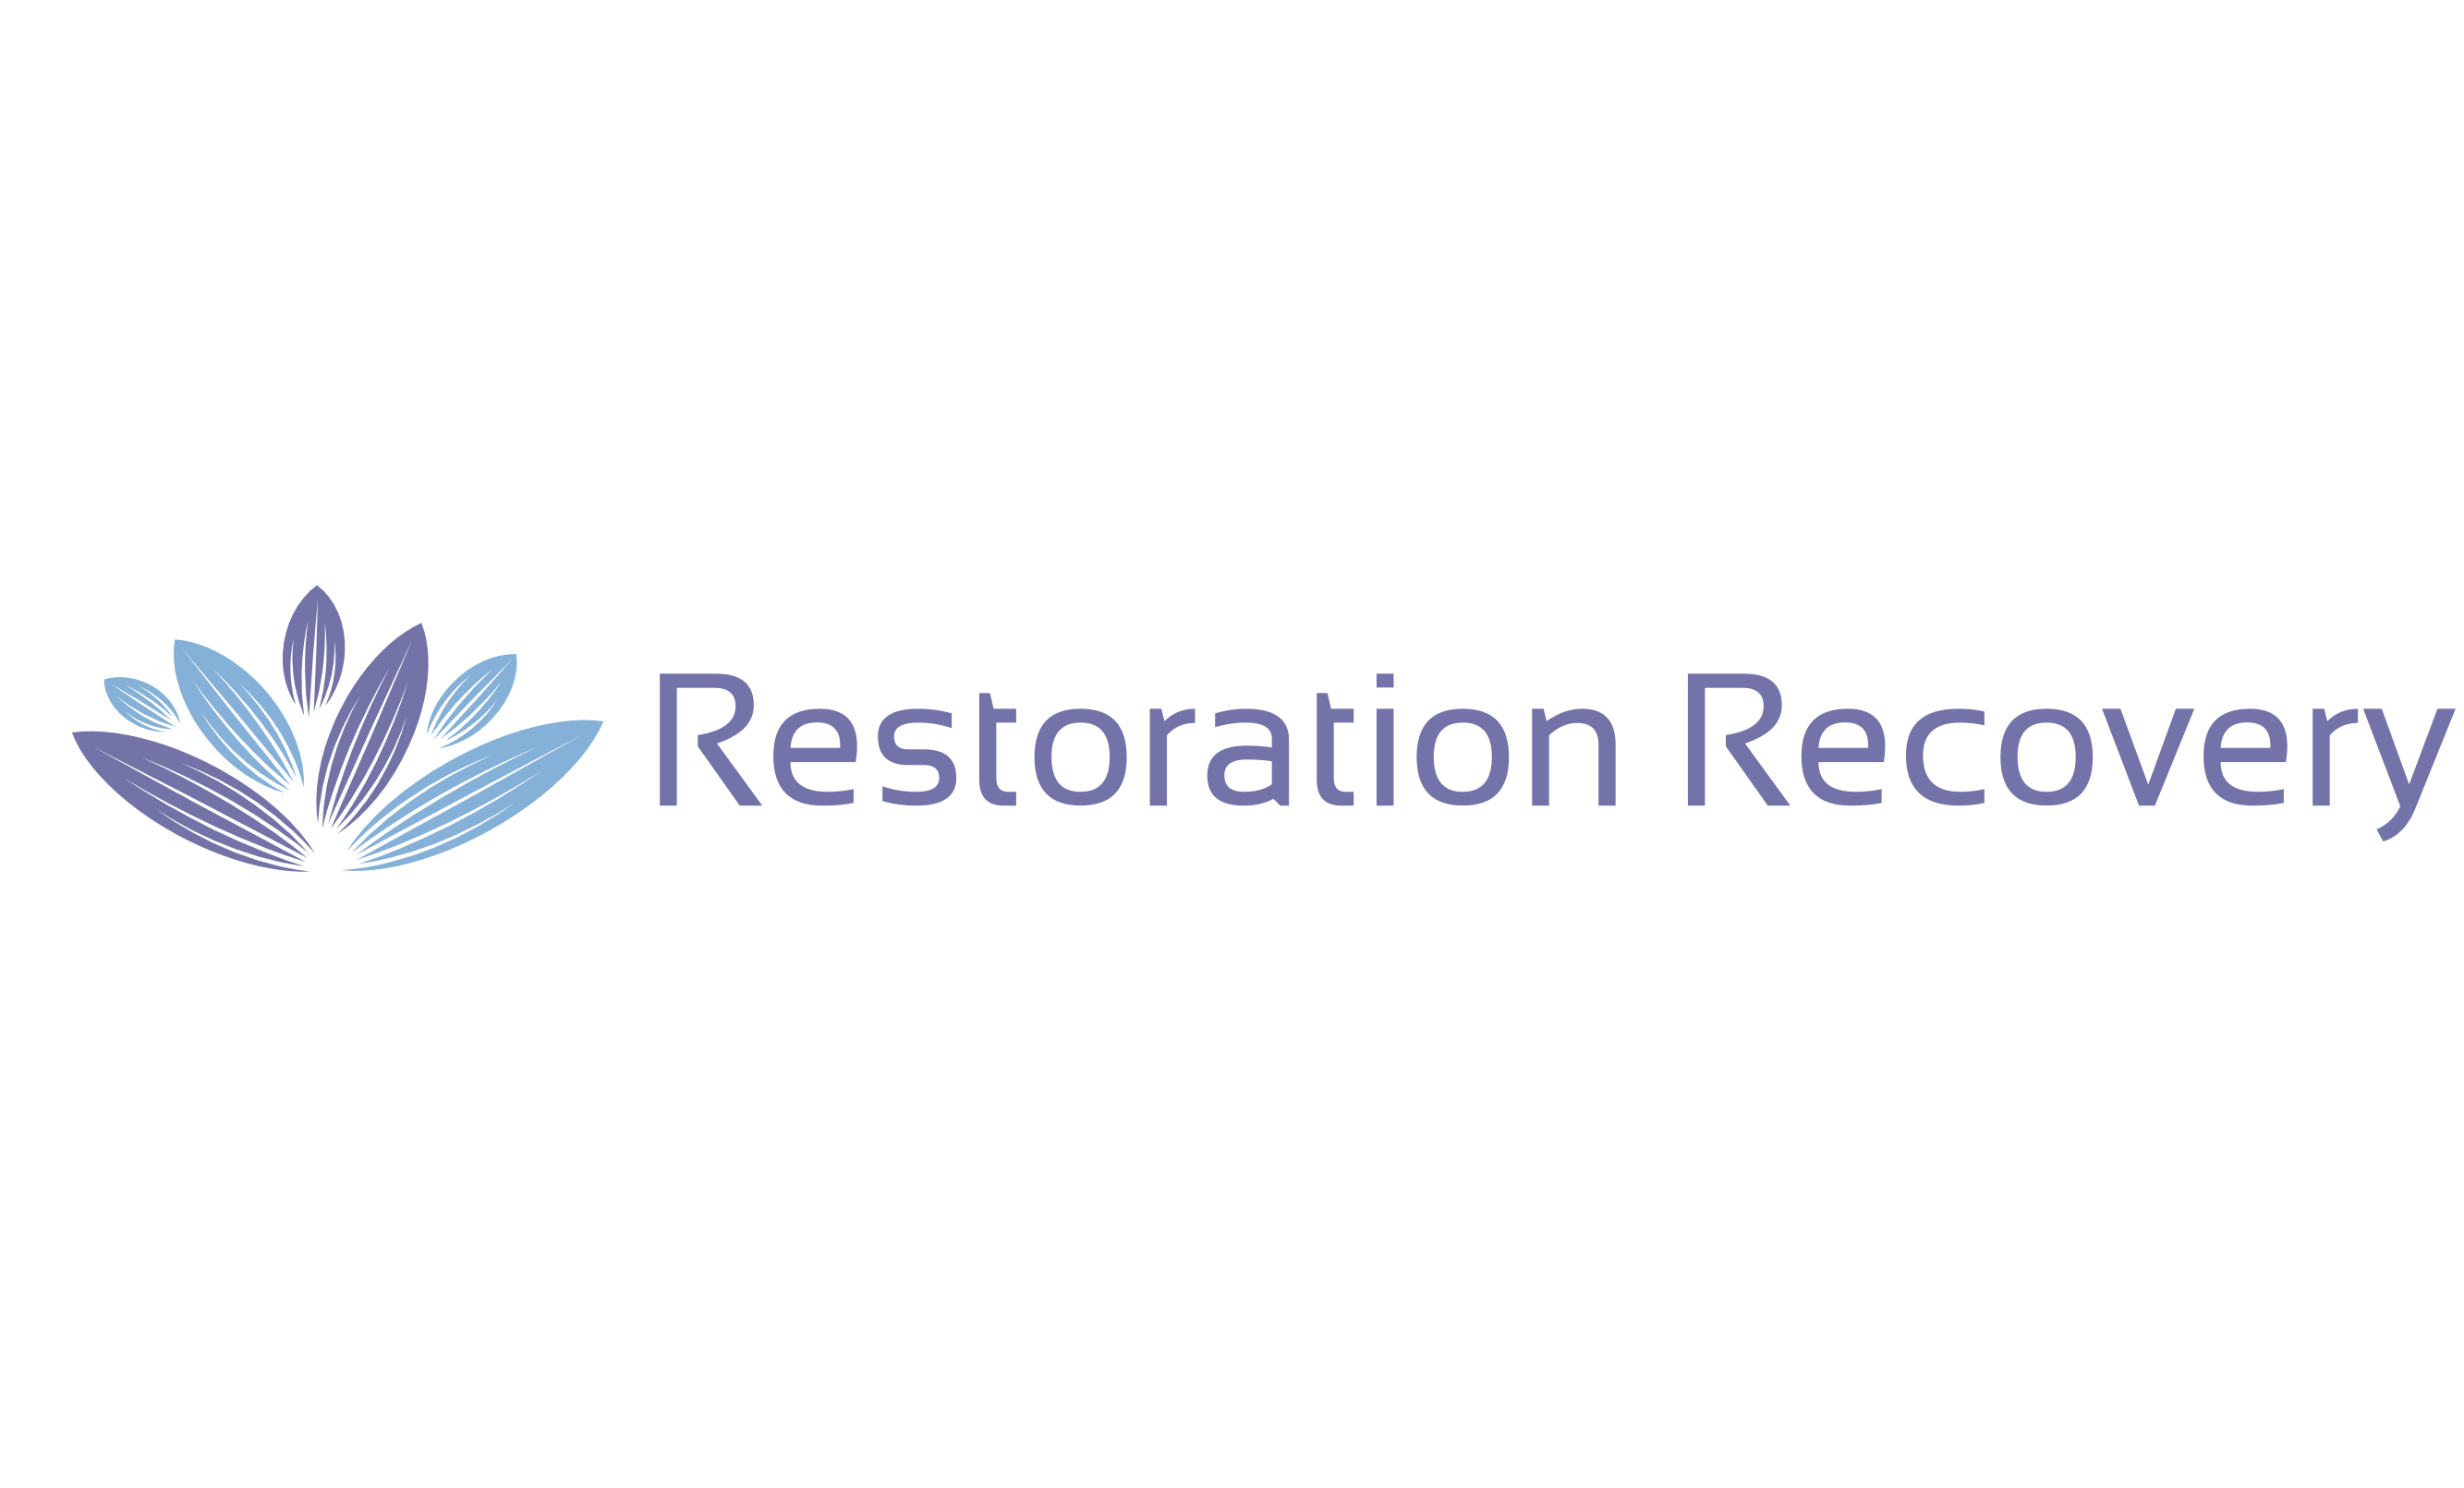 restoration recovery